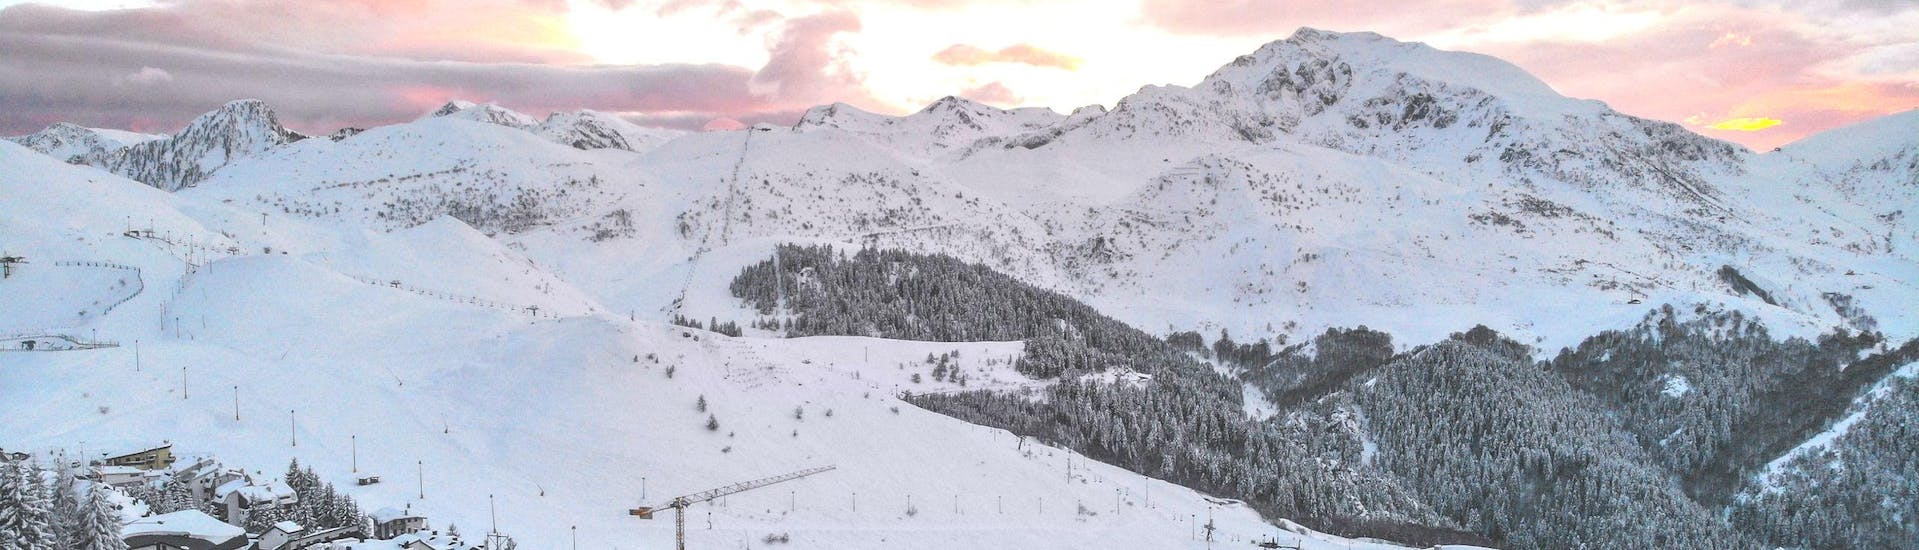 A view of the ski slopes in the Italian ski resort of Prato Nevoso which are used by the local sski schools to carry out their ski lessons.